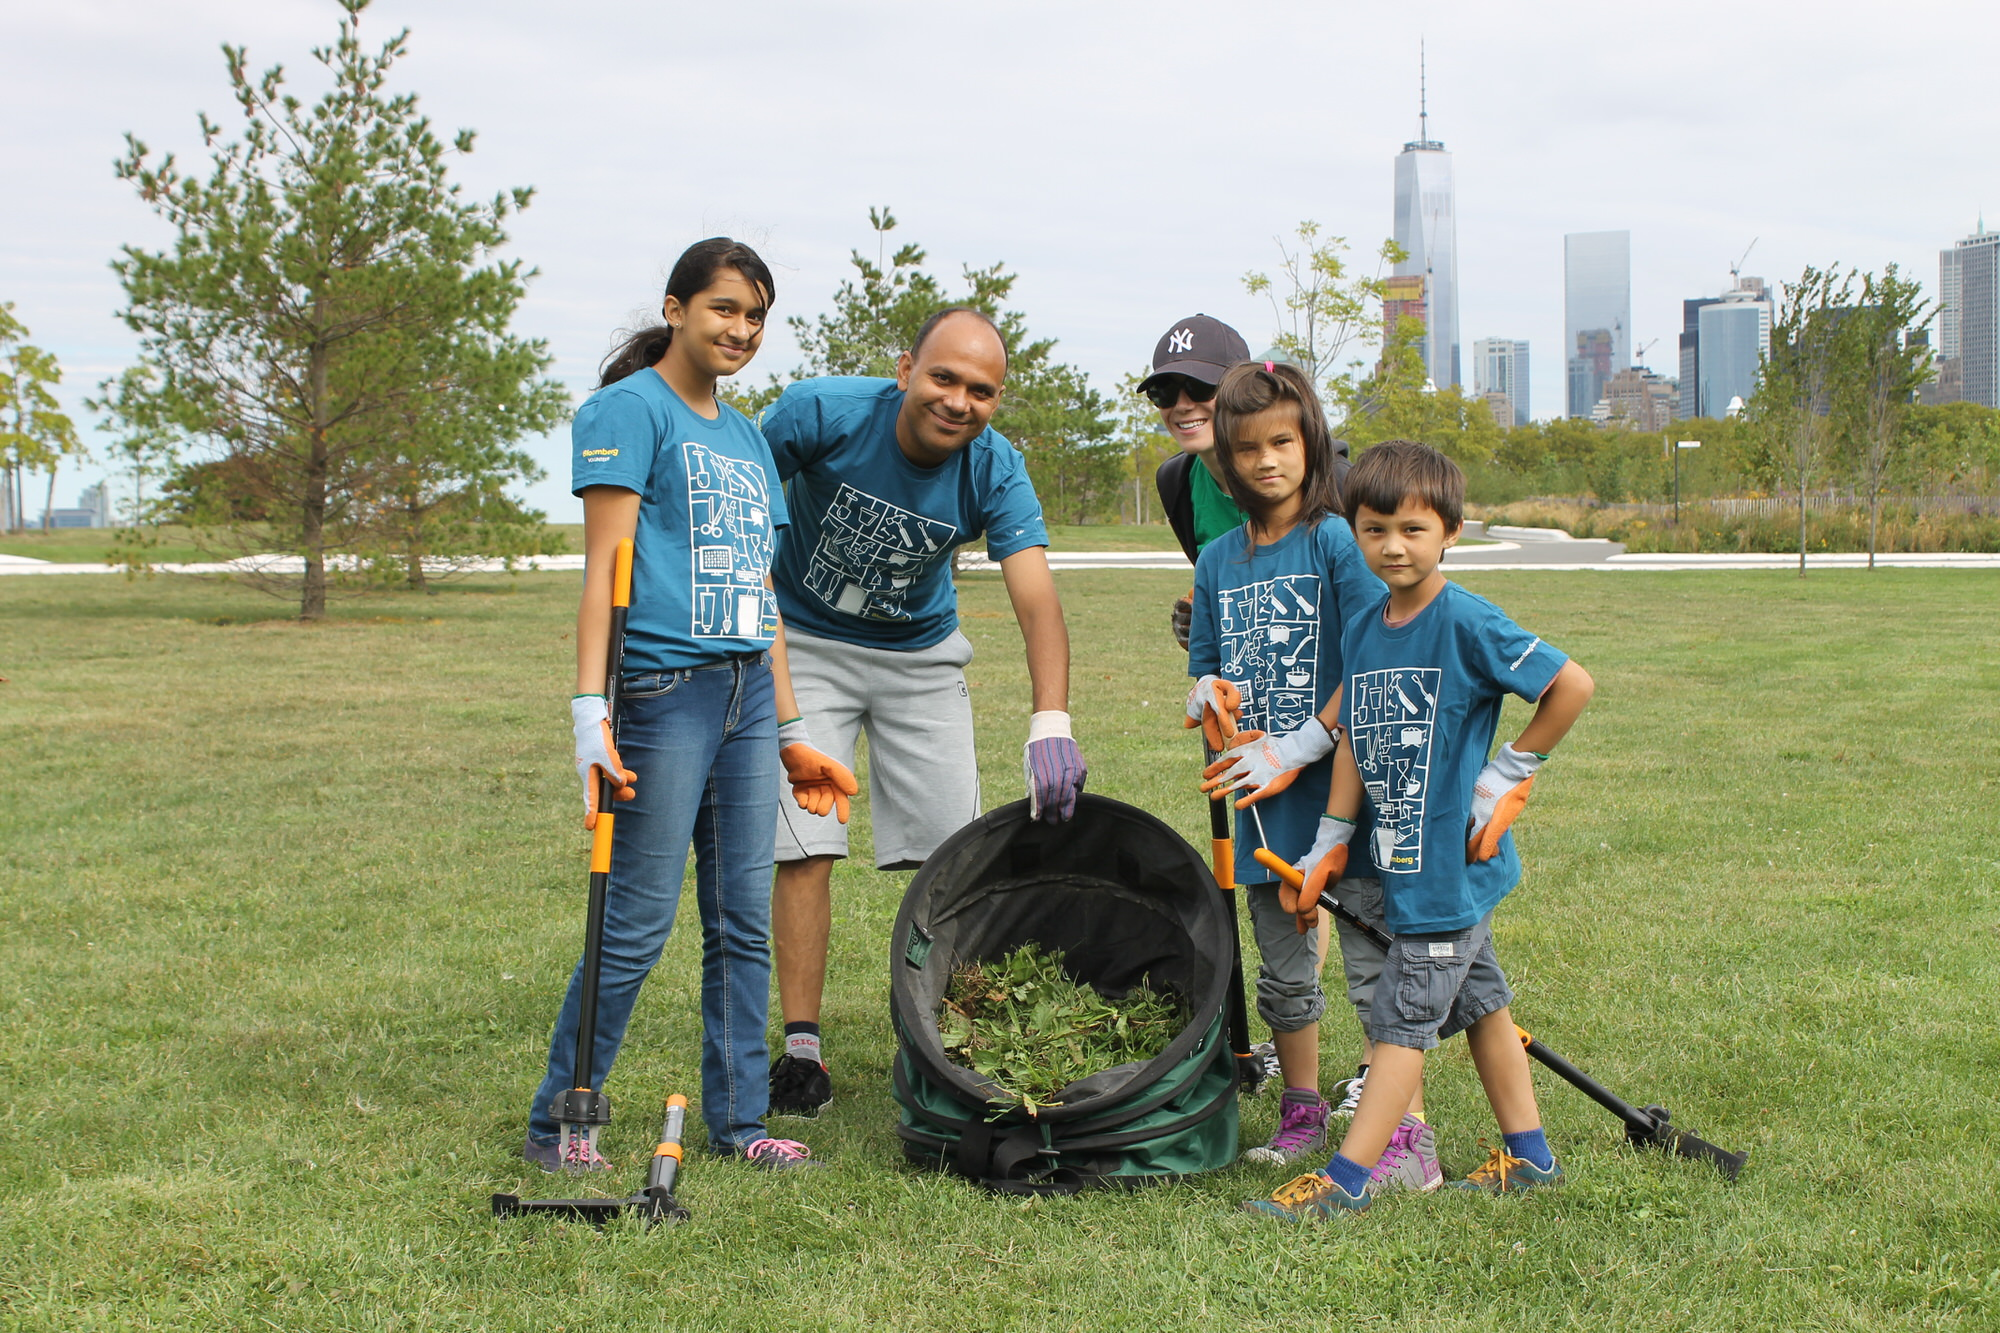 Bloomberg employees and their families help clean up Governors Island Park in New York